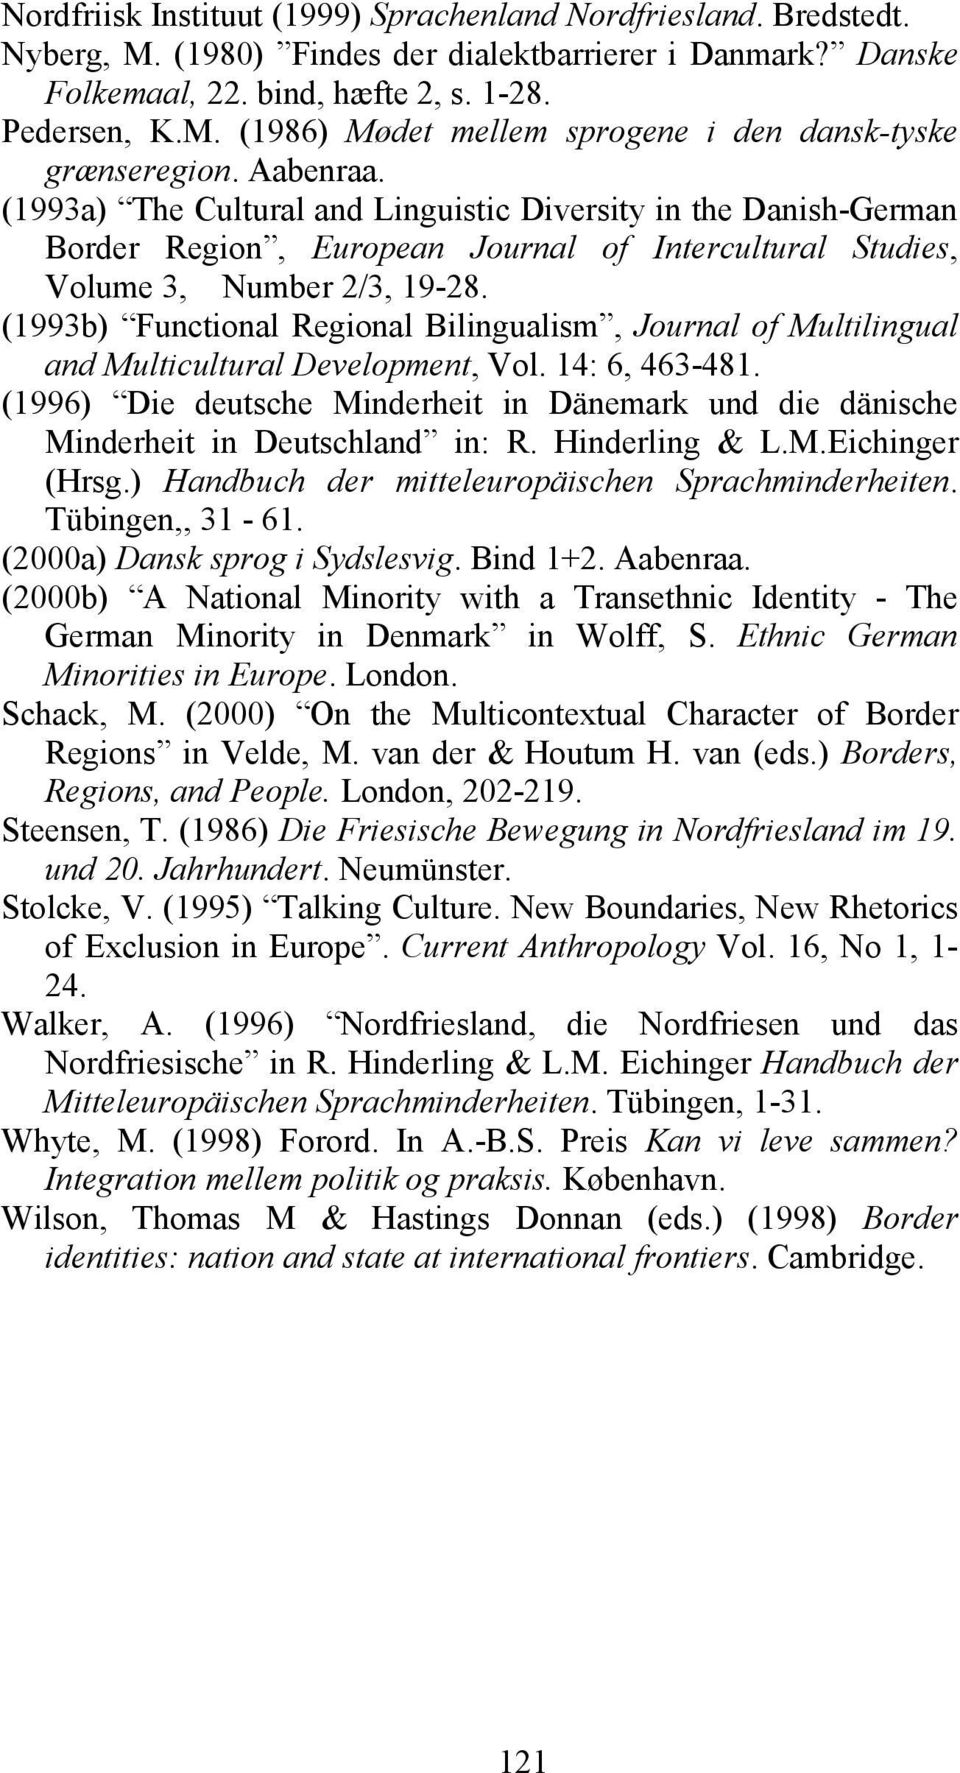 (1993b) Functional Regional Bilingualism, Journal of Multilingual and Multicultural Development, Vol. 14: 6, 463-481.